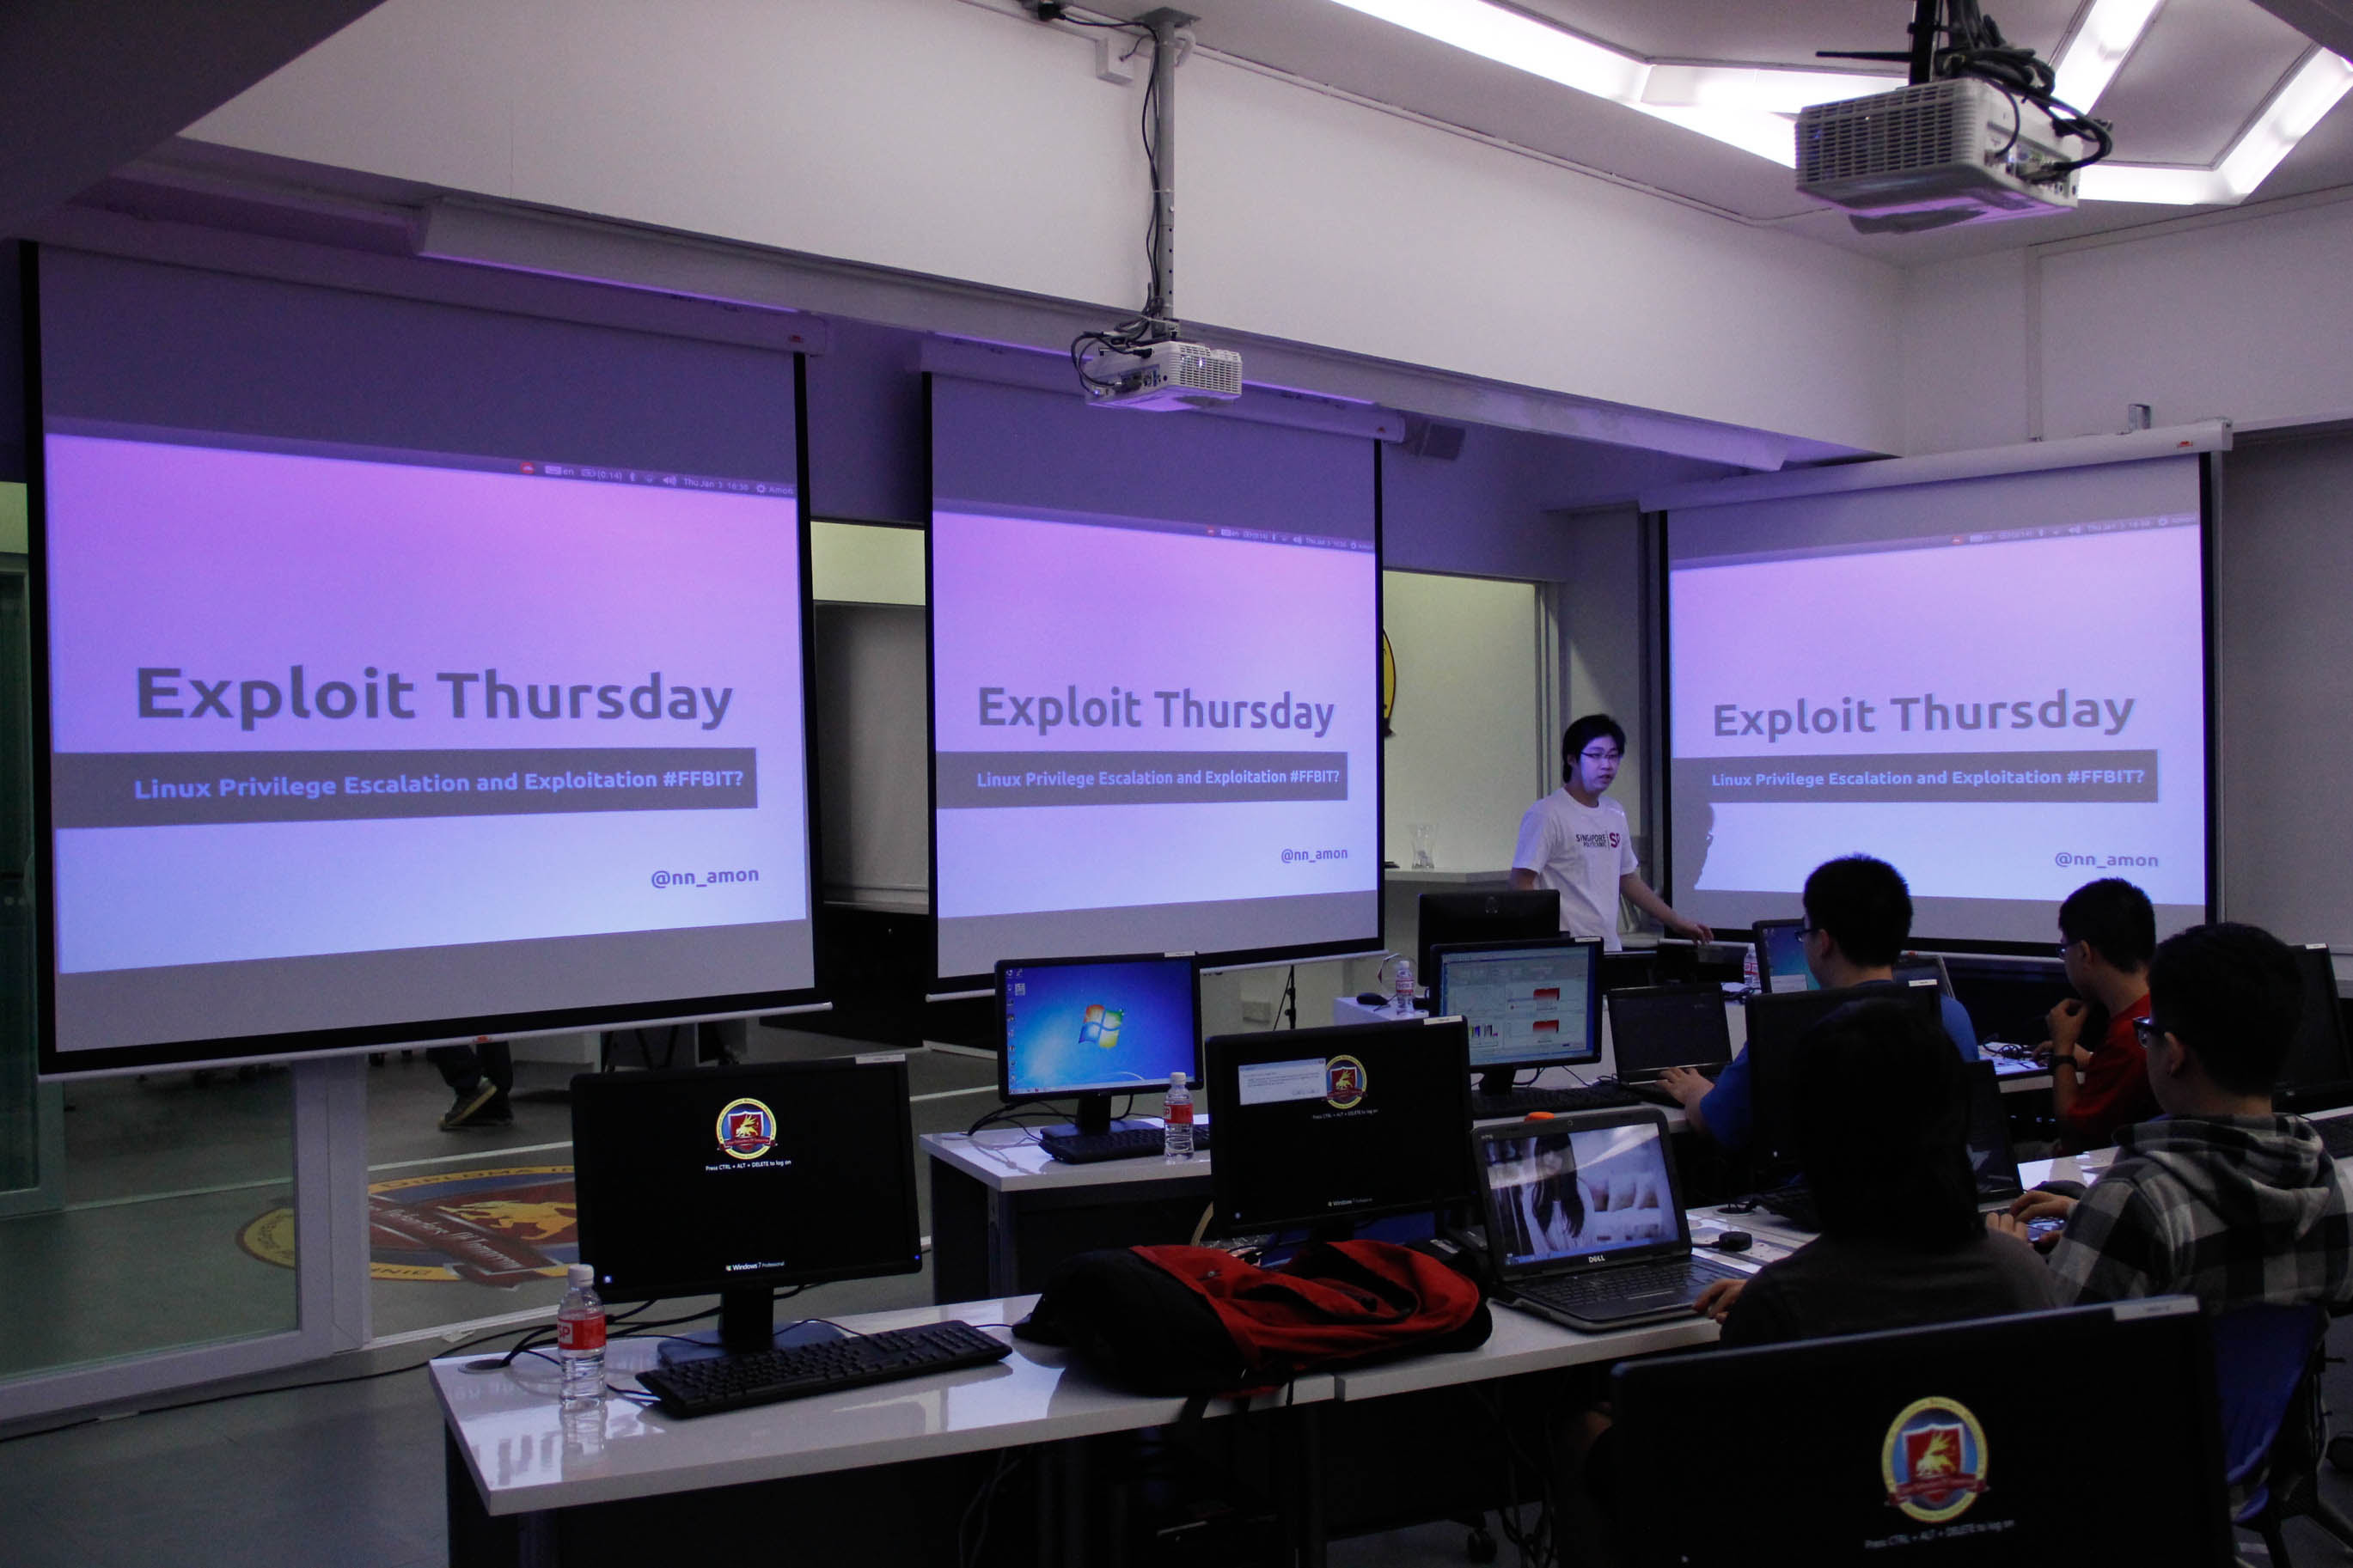 A closed session workshop on exploits and privilege escalation